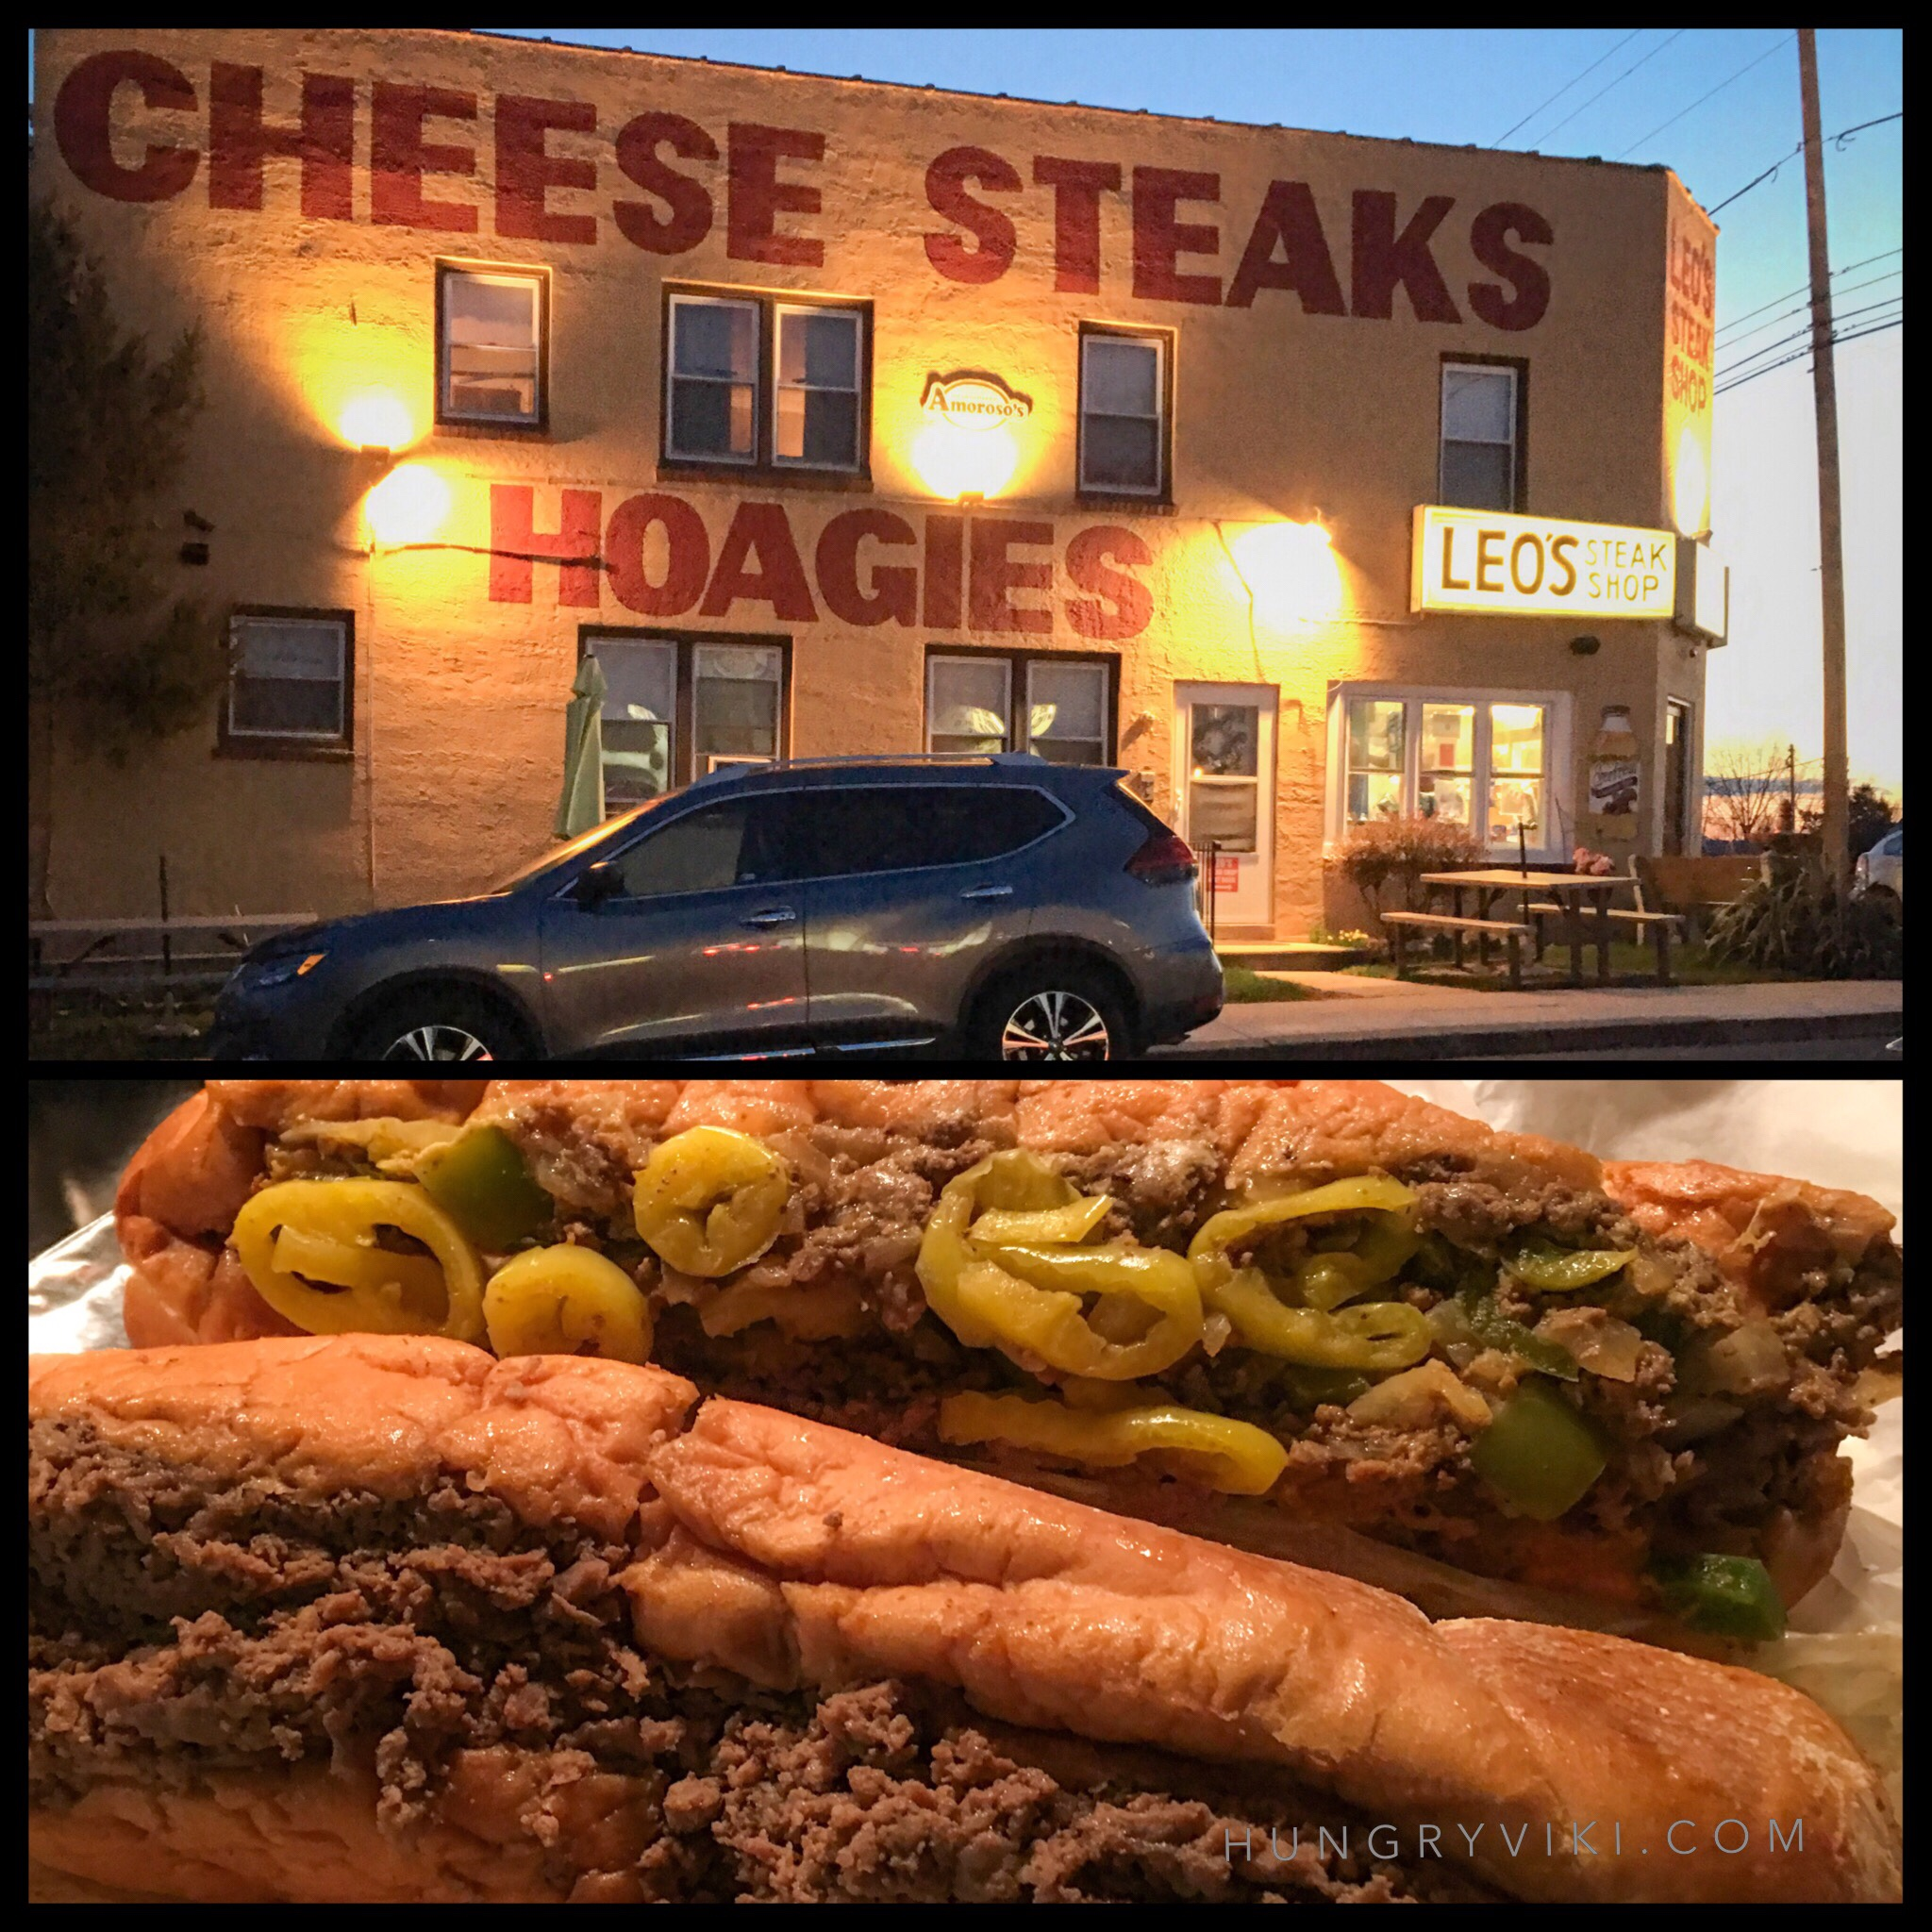 Leos steaks cheesesteaks